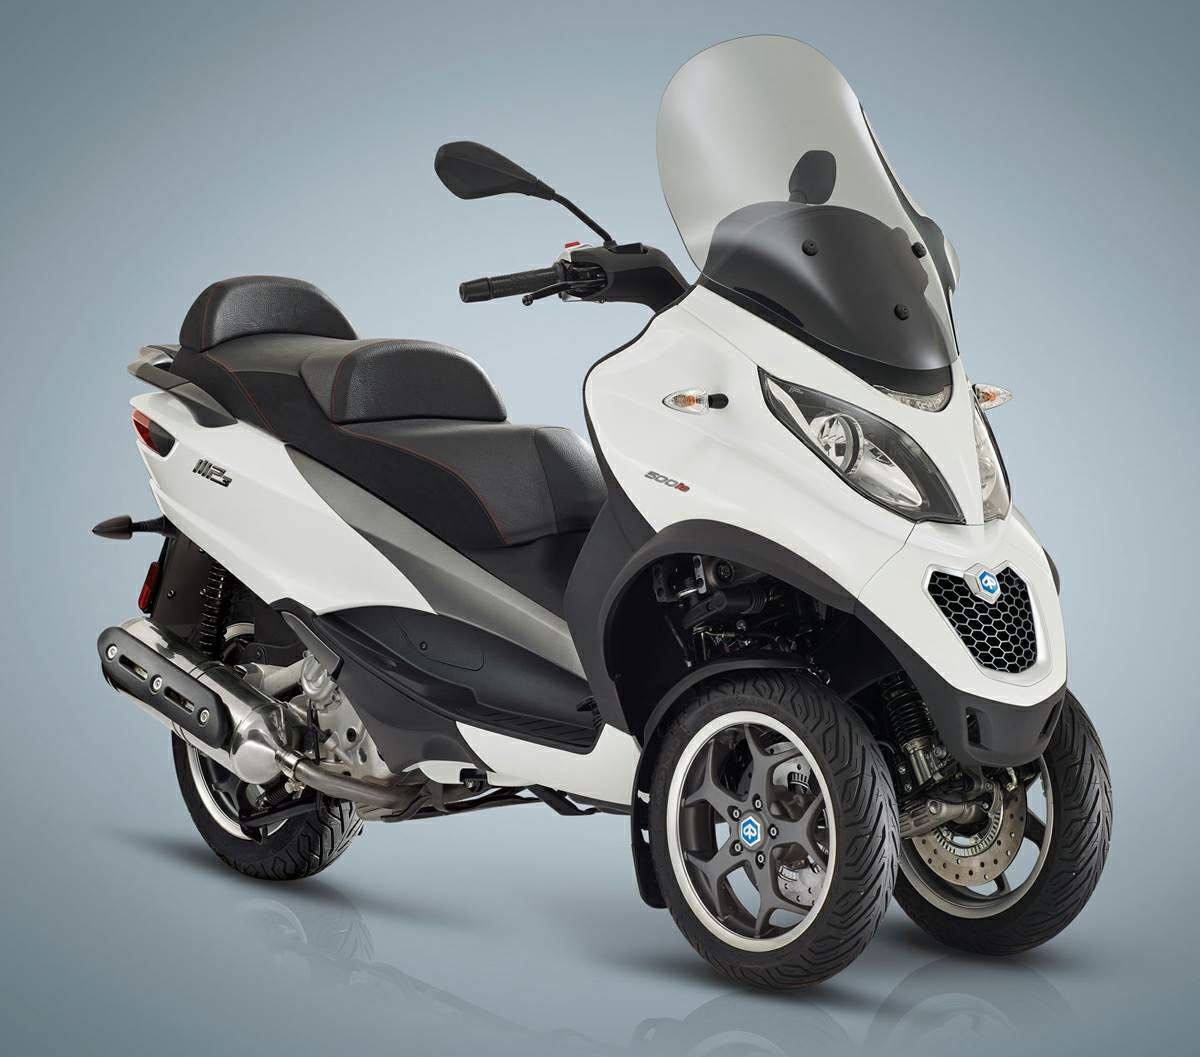 Piaggio MP3 500 Sport LT / HPE Business technical specifications